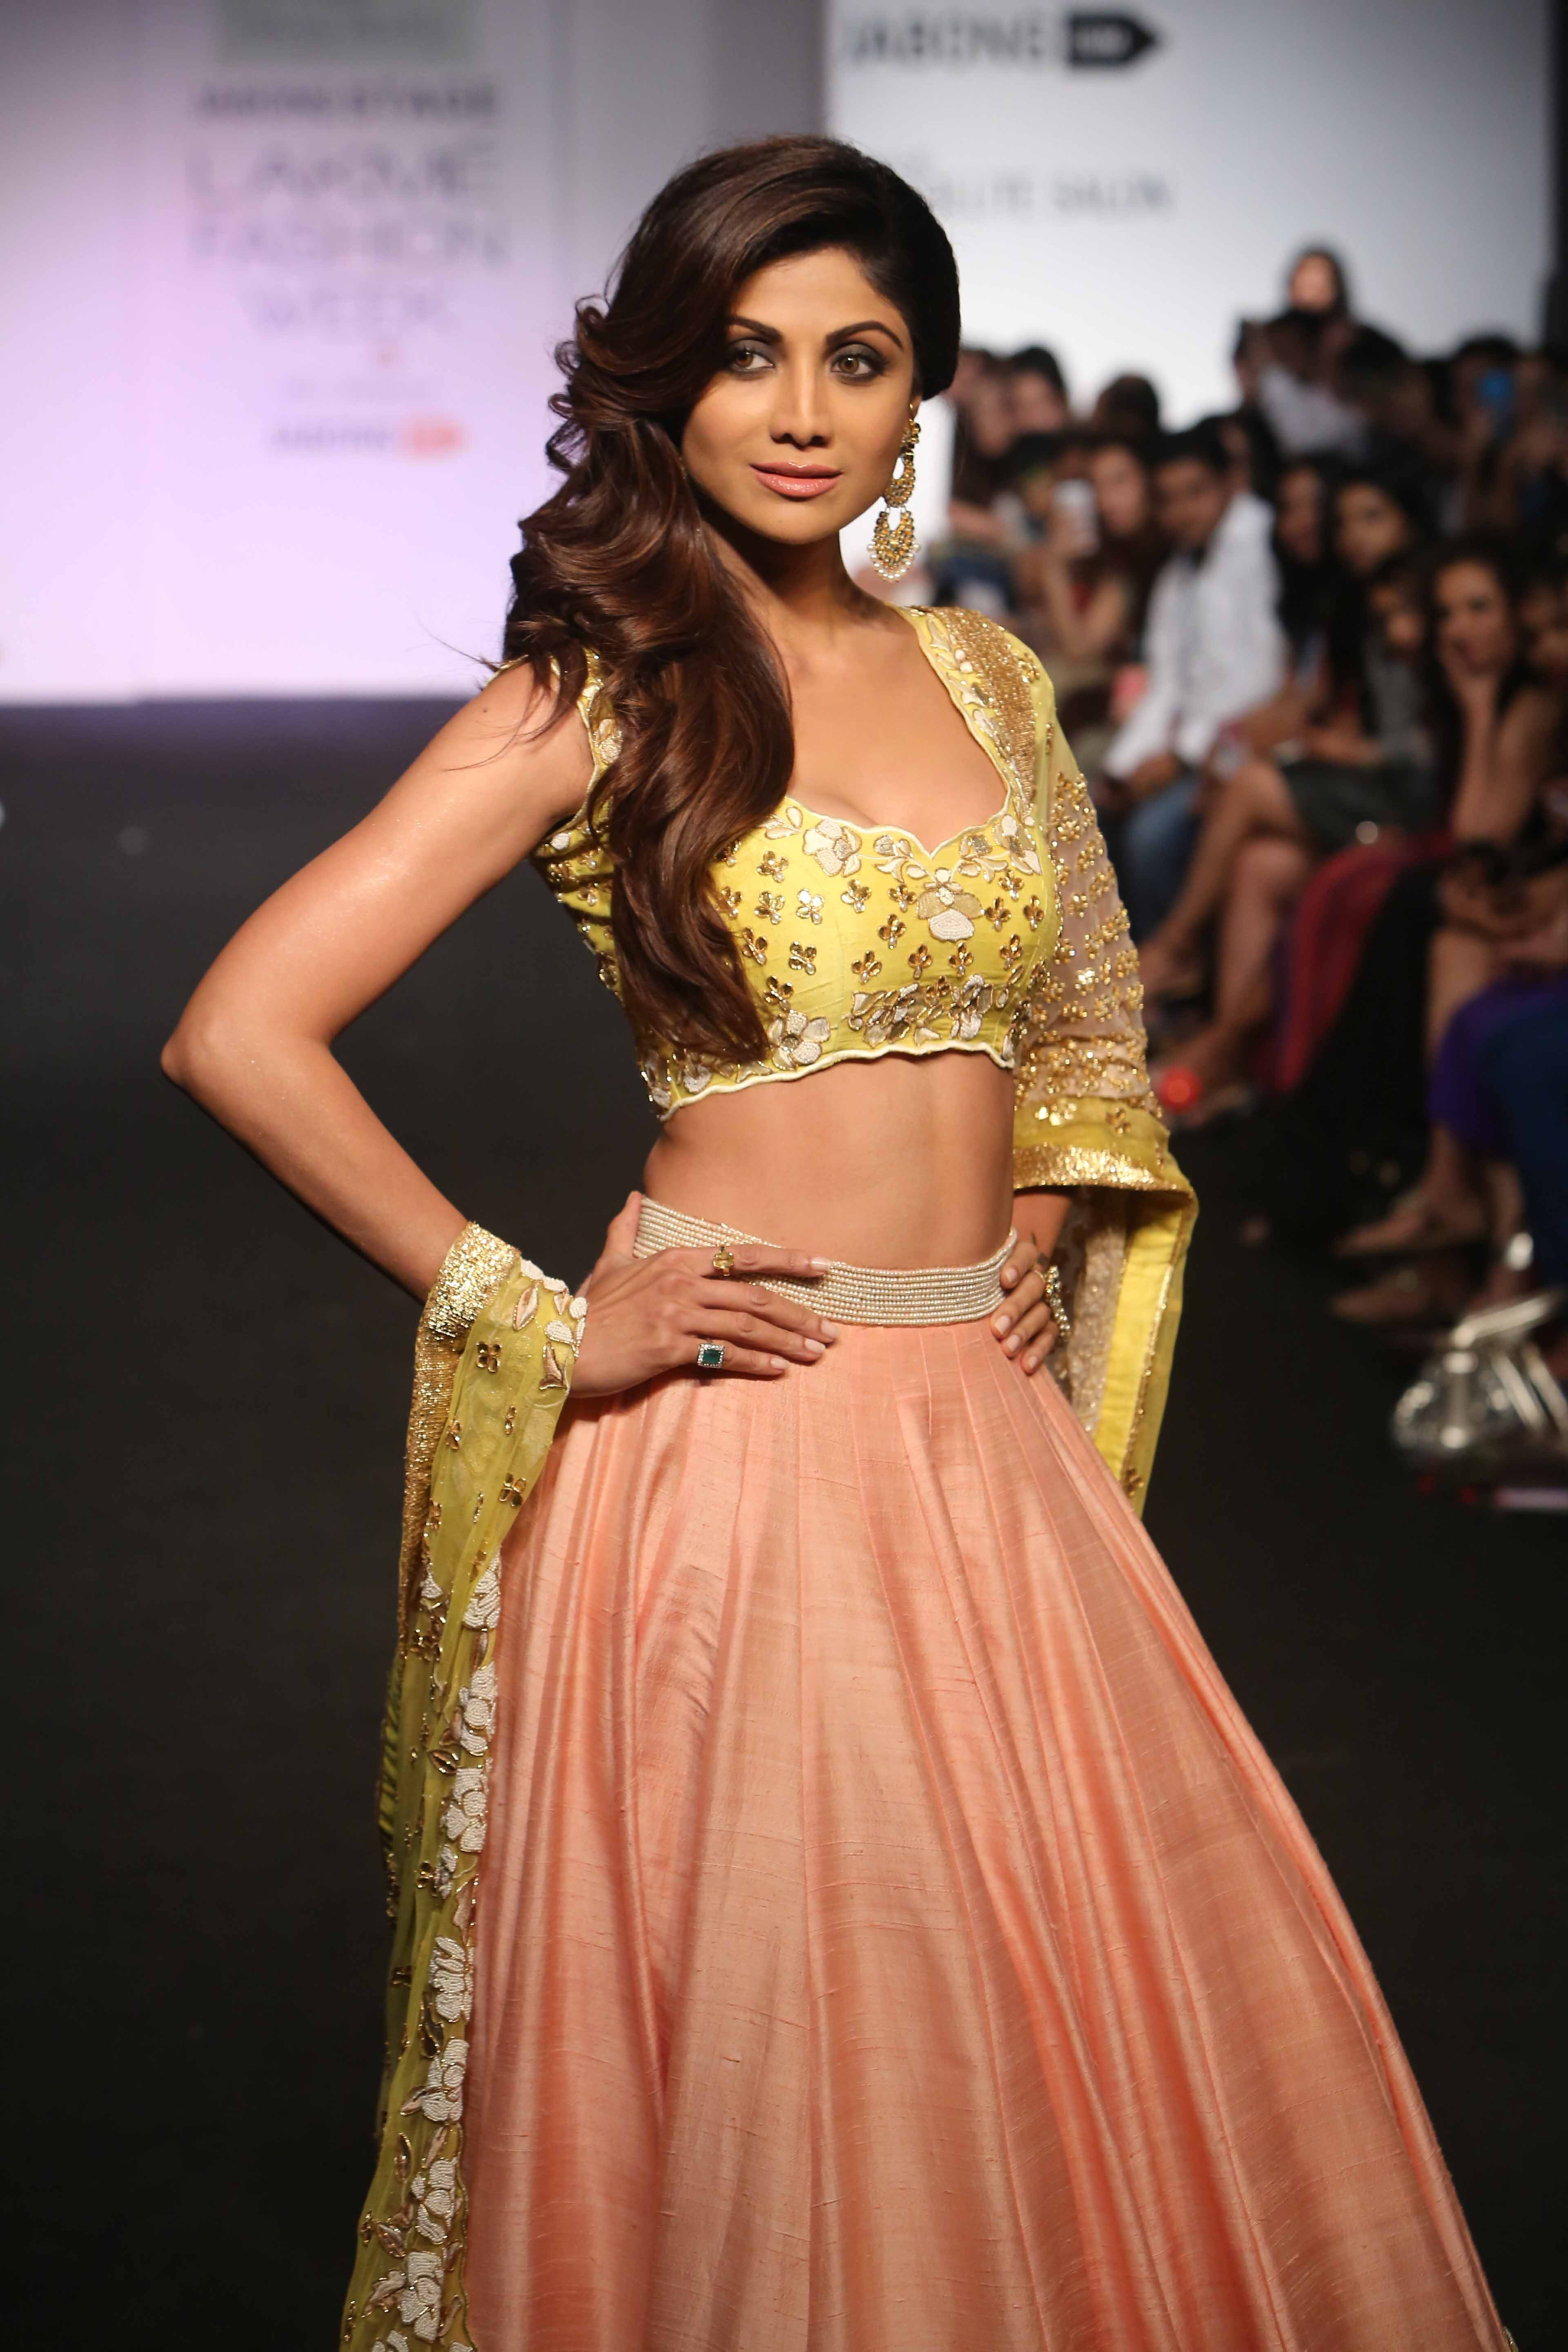 Actress Shilpa Shetty for Divya Reddy at LFW WF 15 (7)